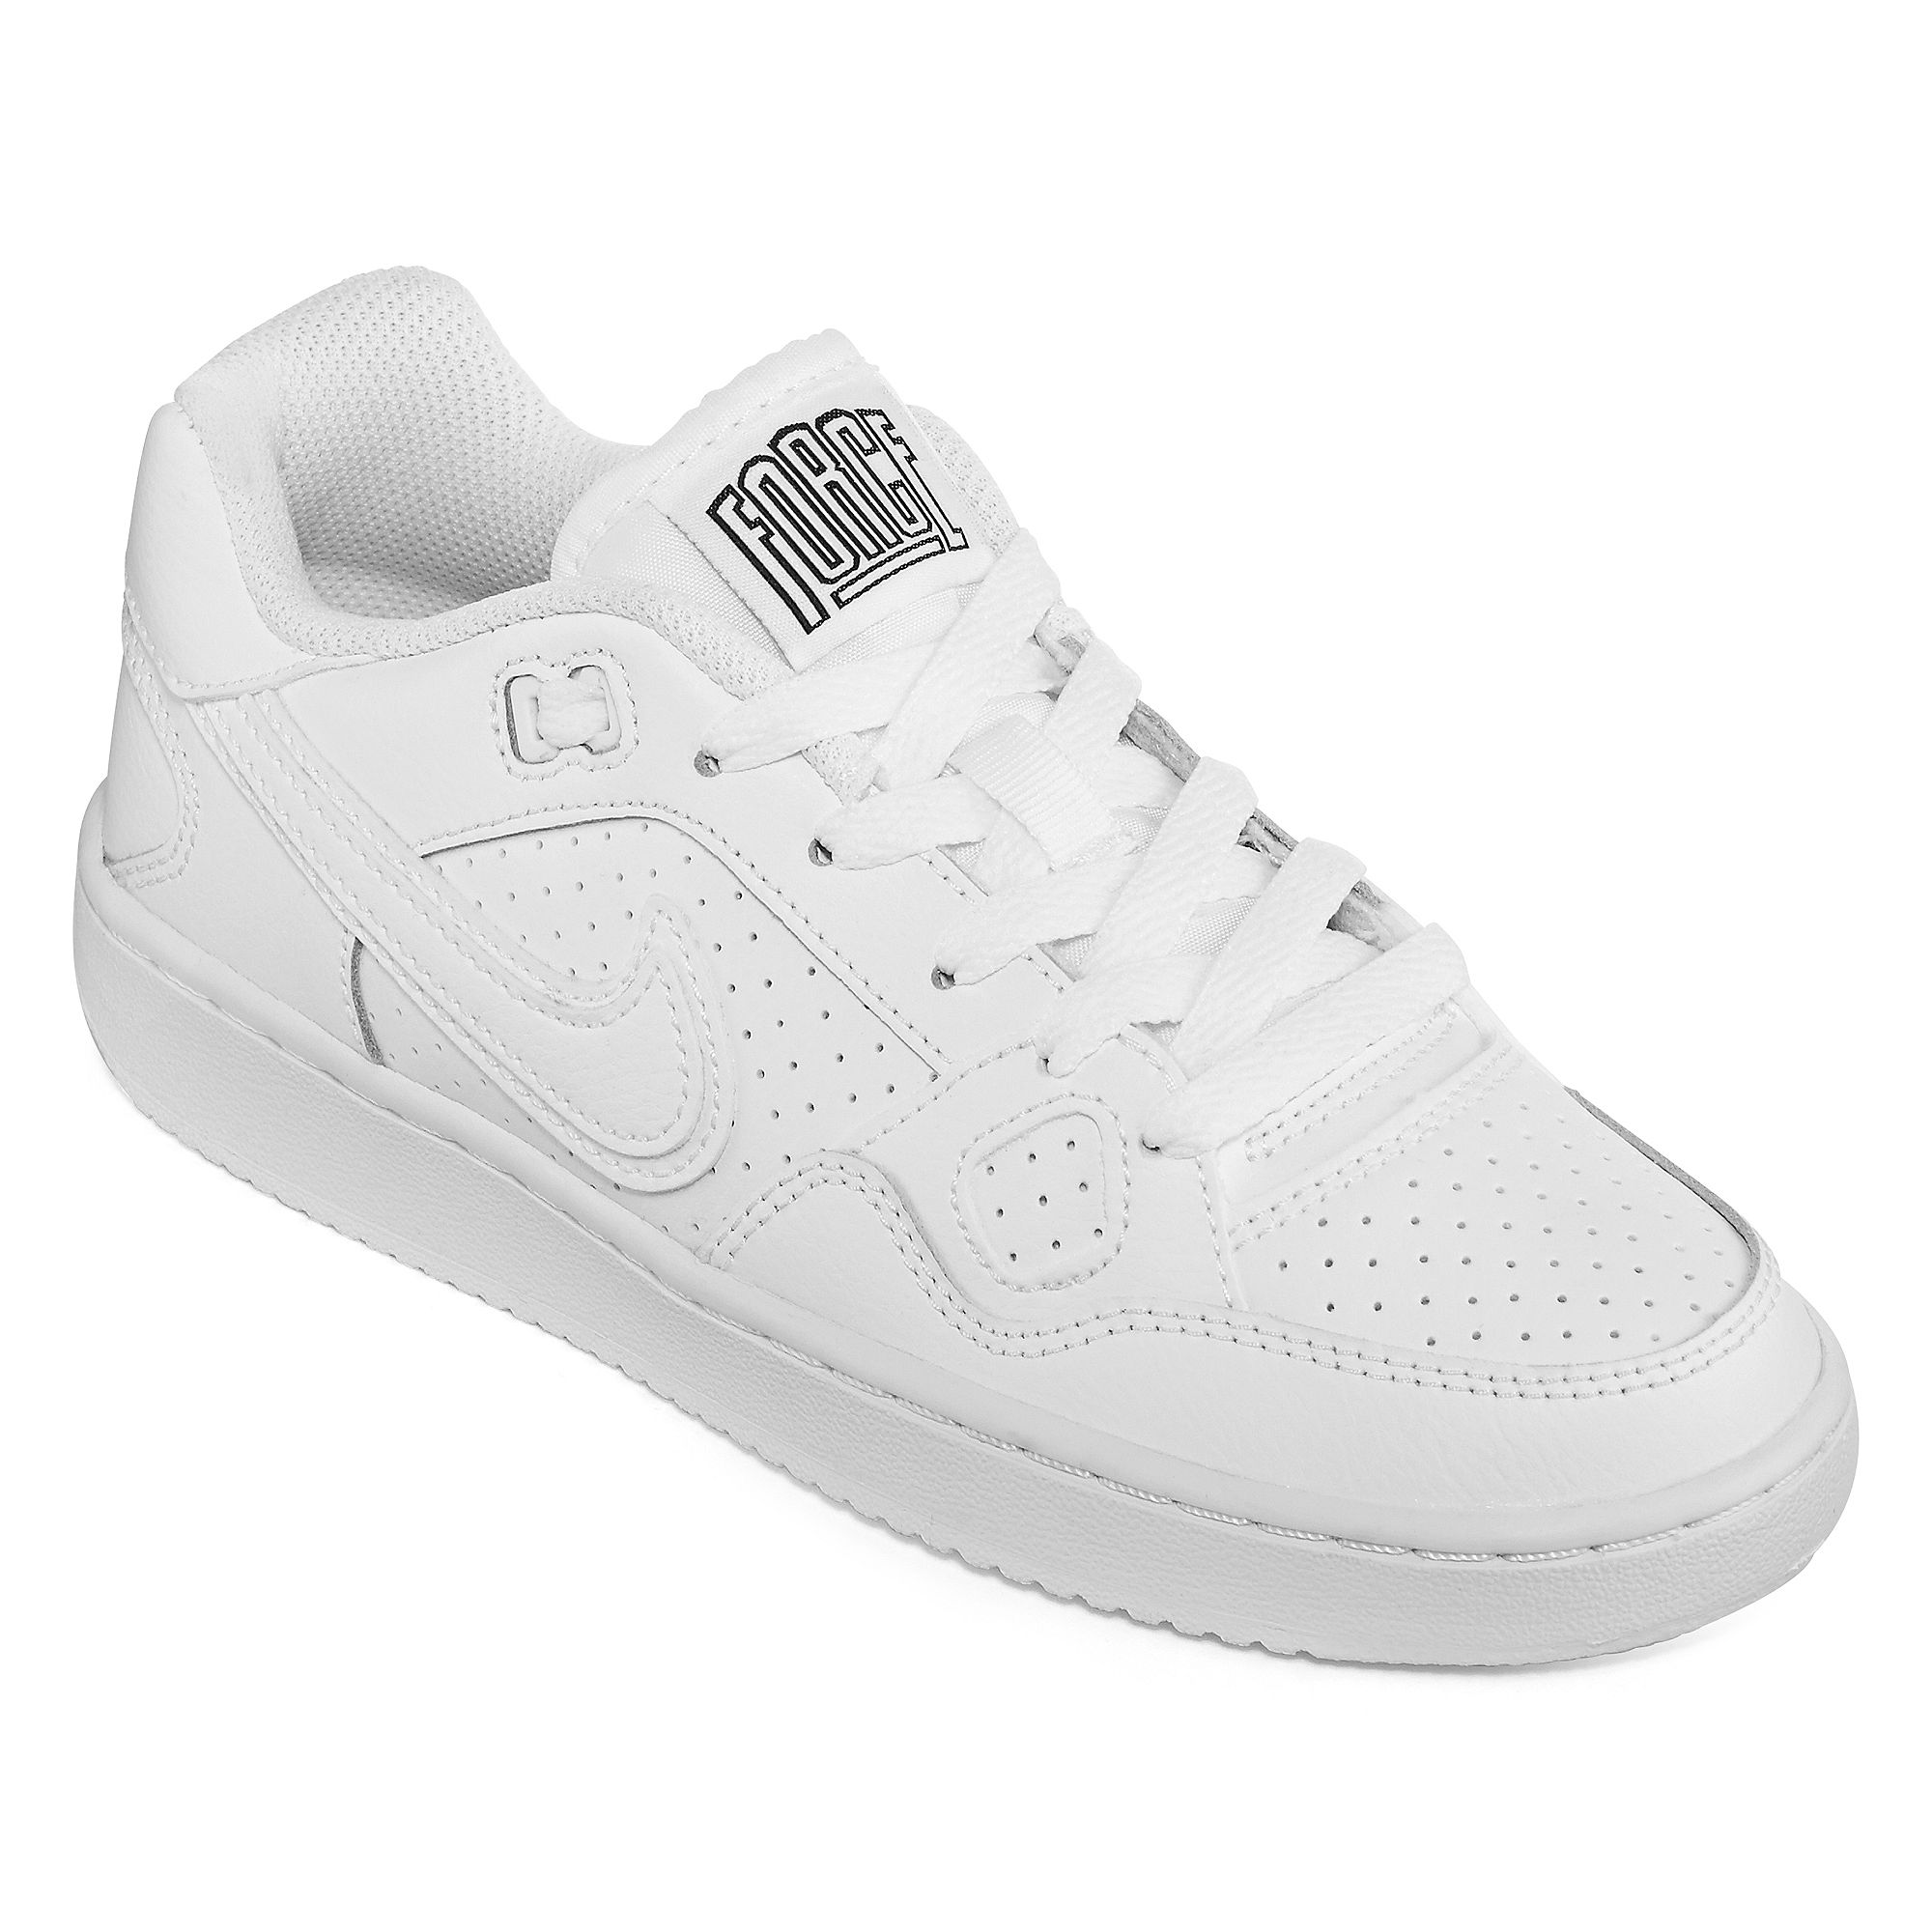 UPC 091202934712 - Nike Sons of Force Boys Low-Top Basketball ...